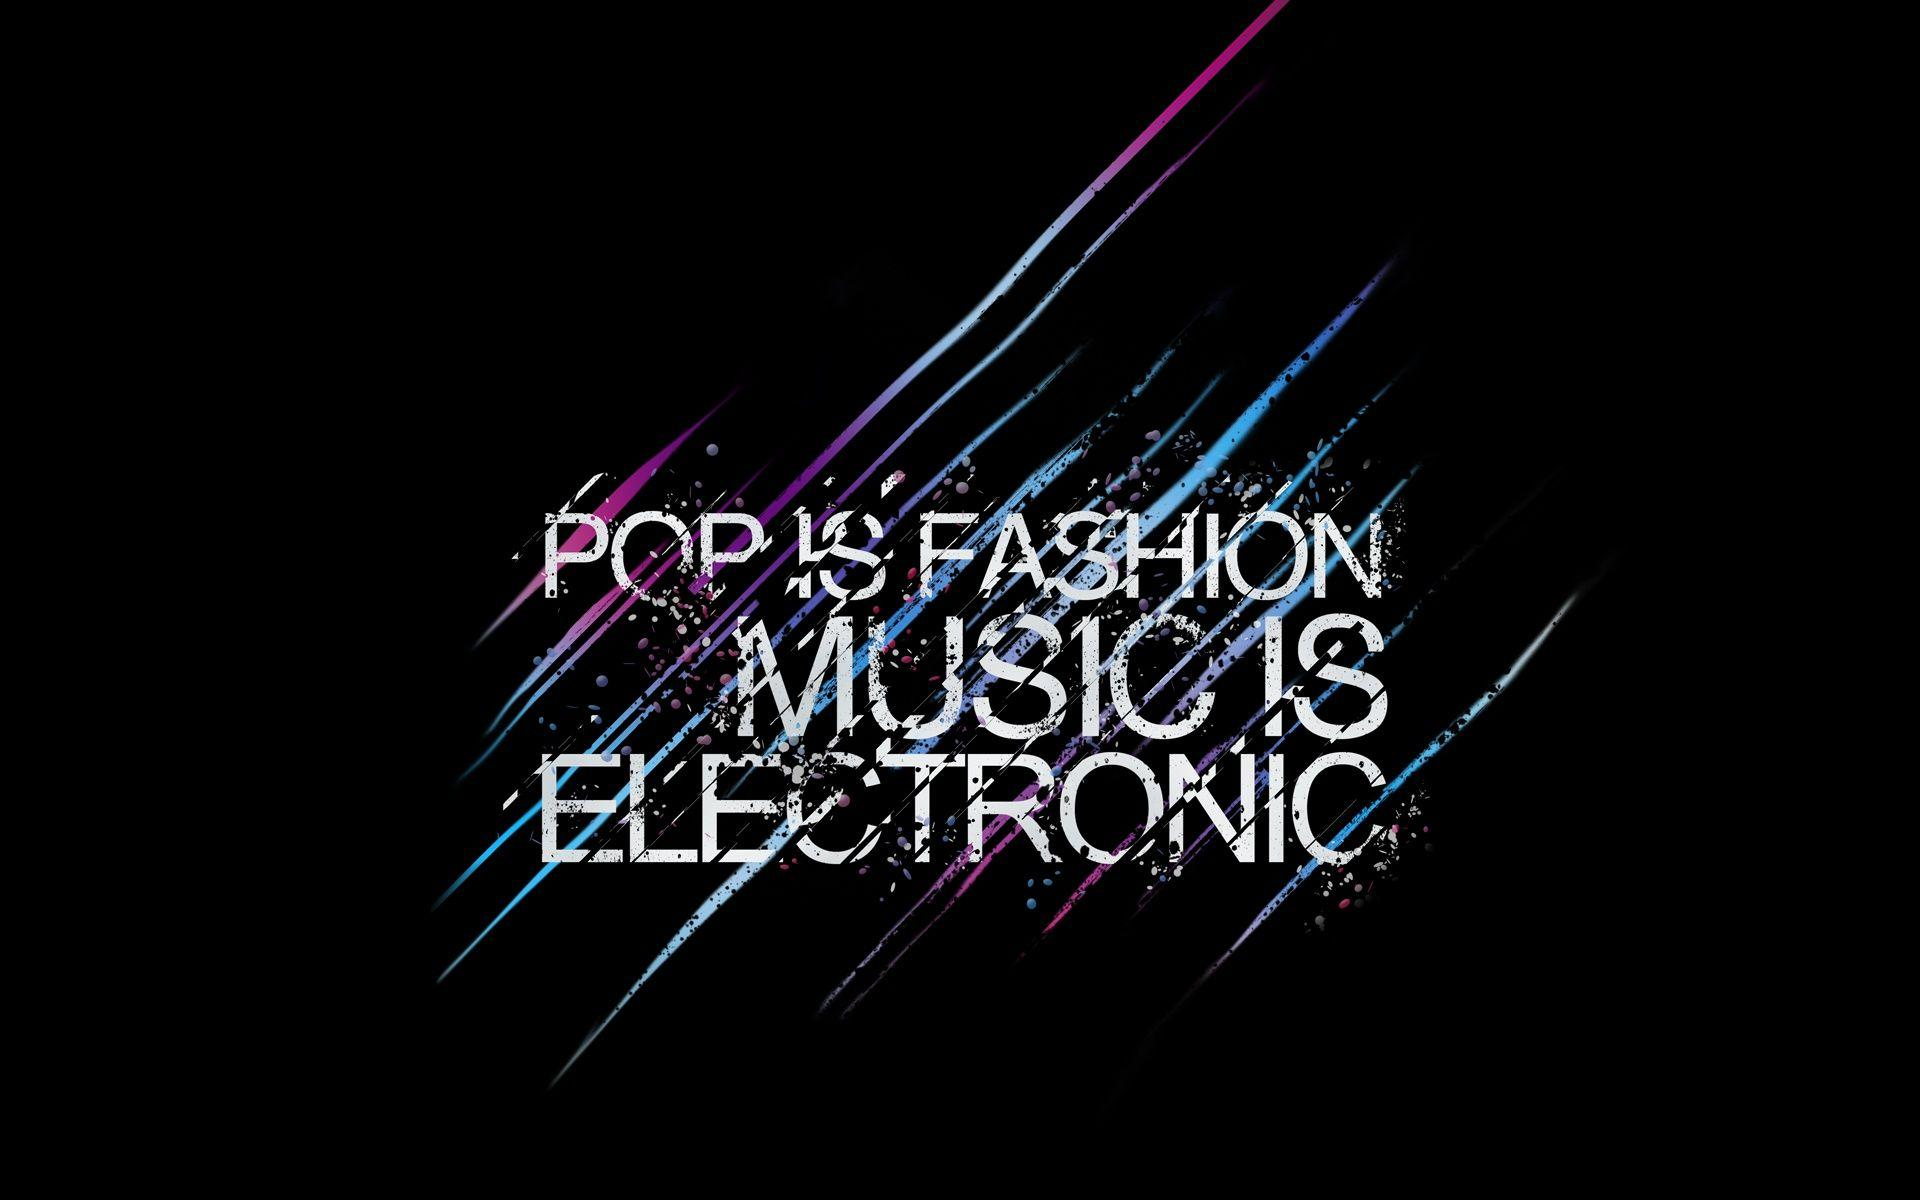 electro_power HD Wallpapers